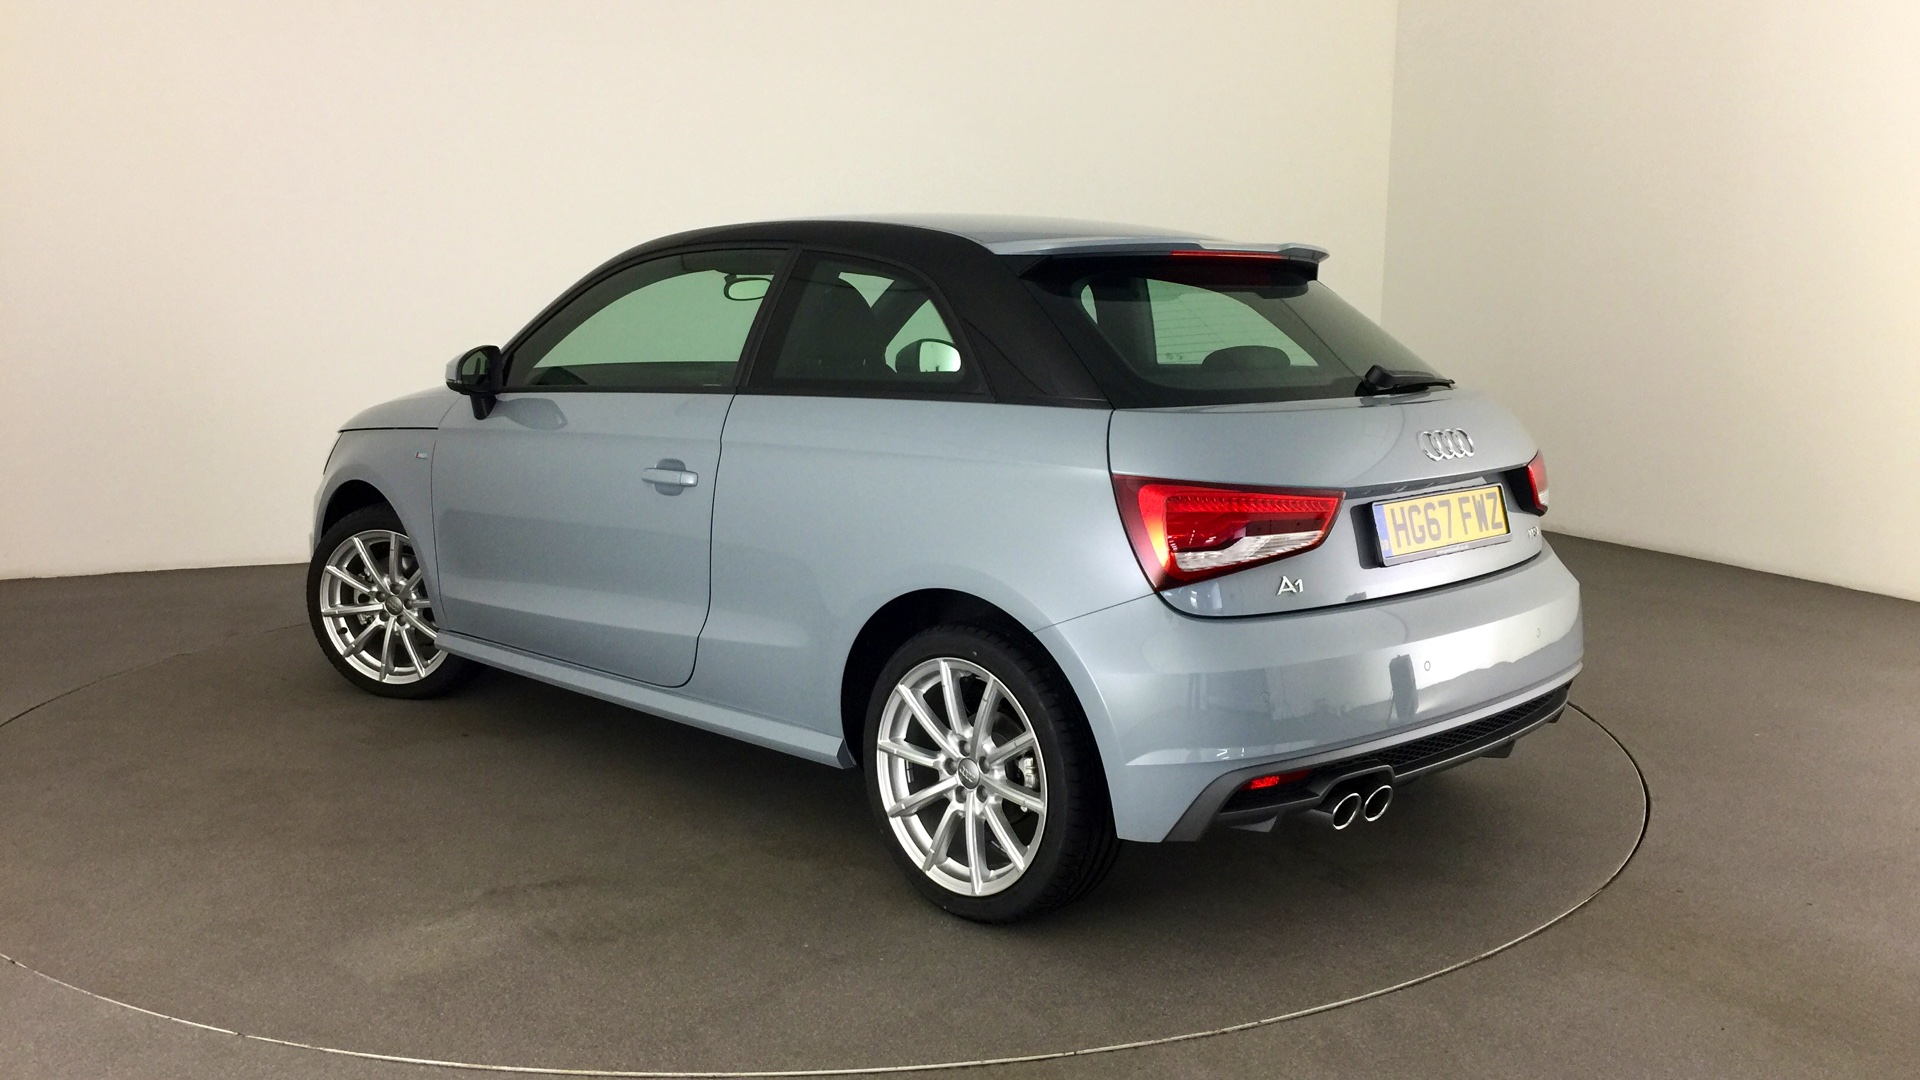 approved used audi a1 s line 1 4 tfsi 125 ps s tronic hg67fwz 18 500. Black Bedroom Furniture Sets. Home Design Ideas